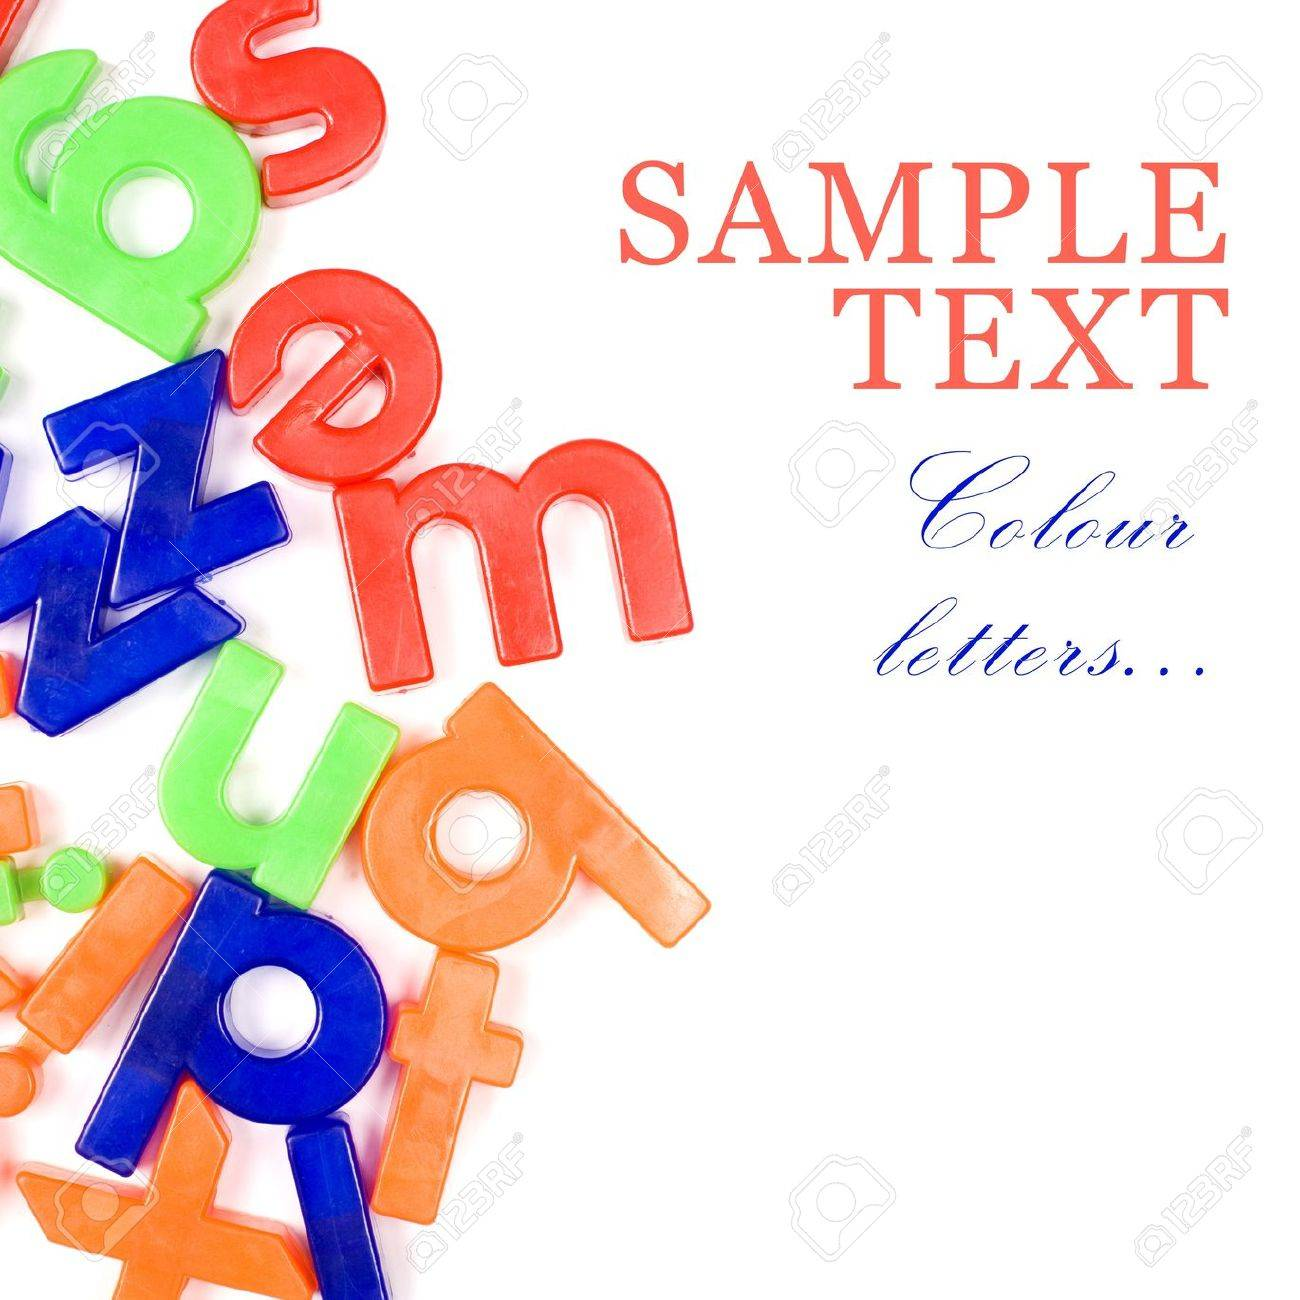 Plastic English Letters Isolated On White Stock Photo, Picture And ...